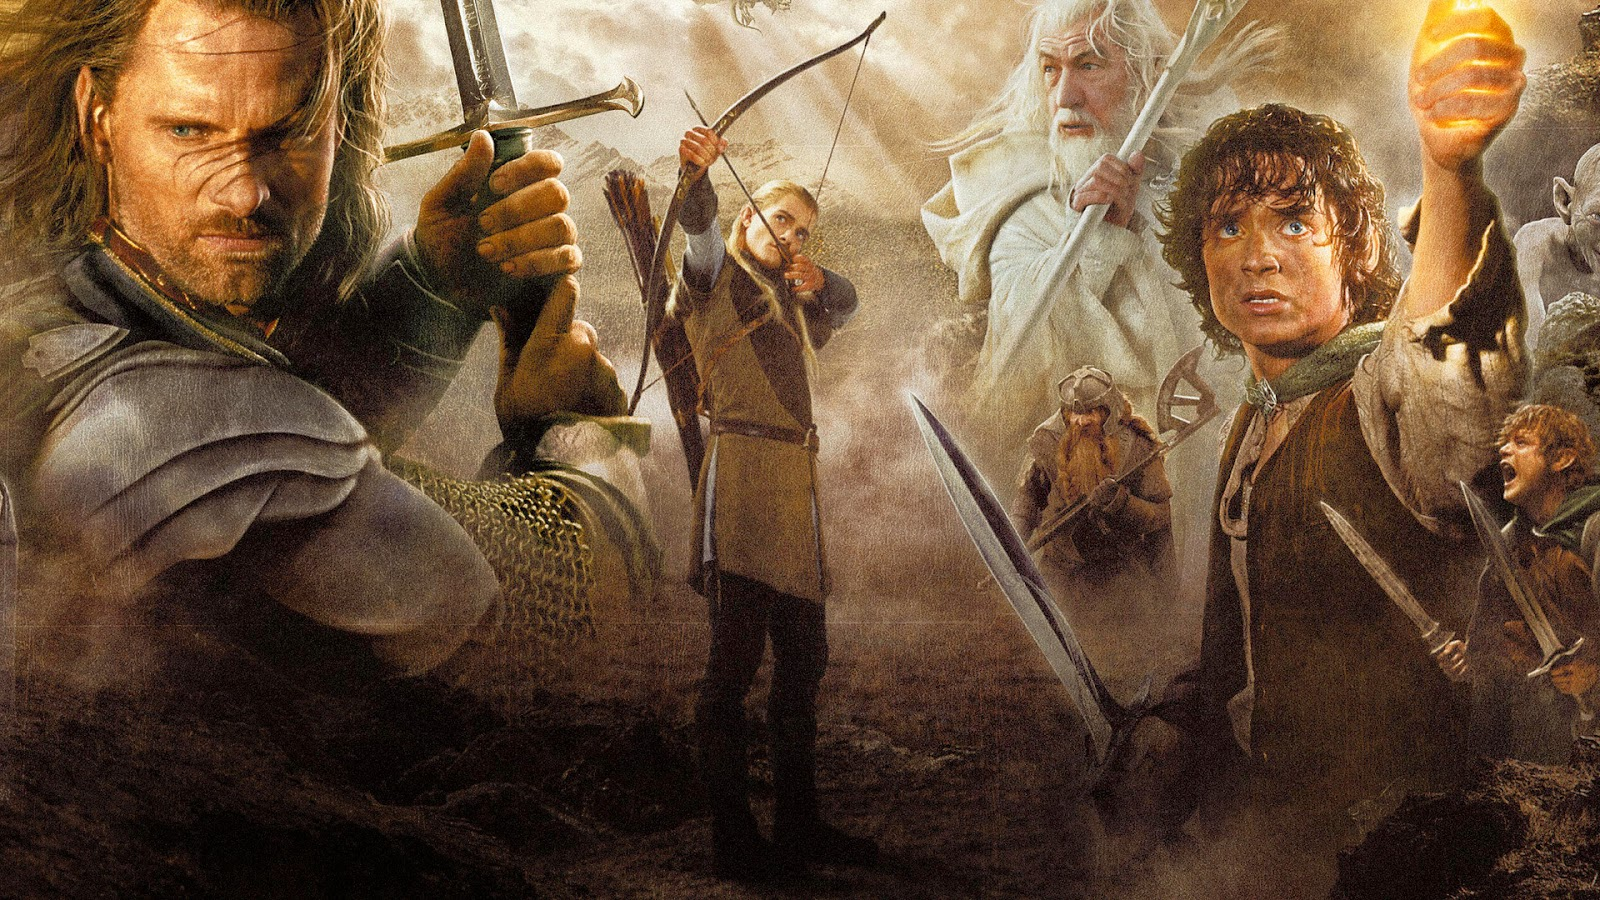 The Fellowship of the Ring Film Review